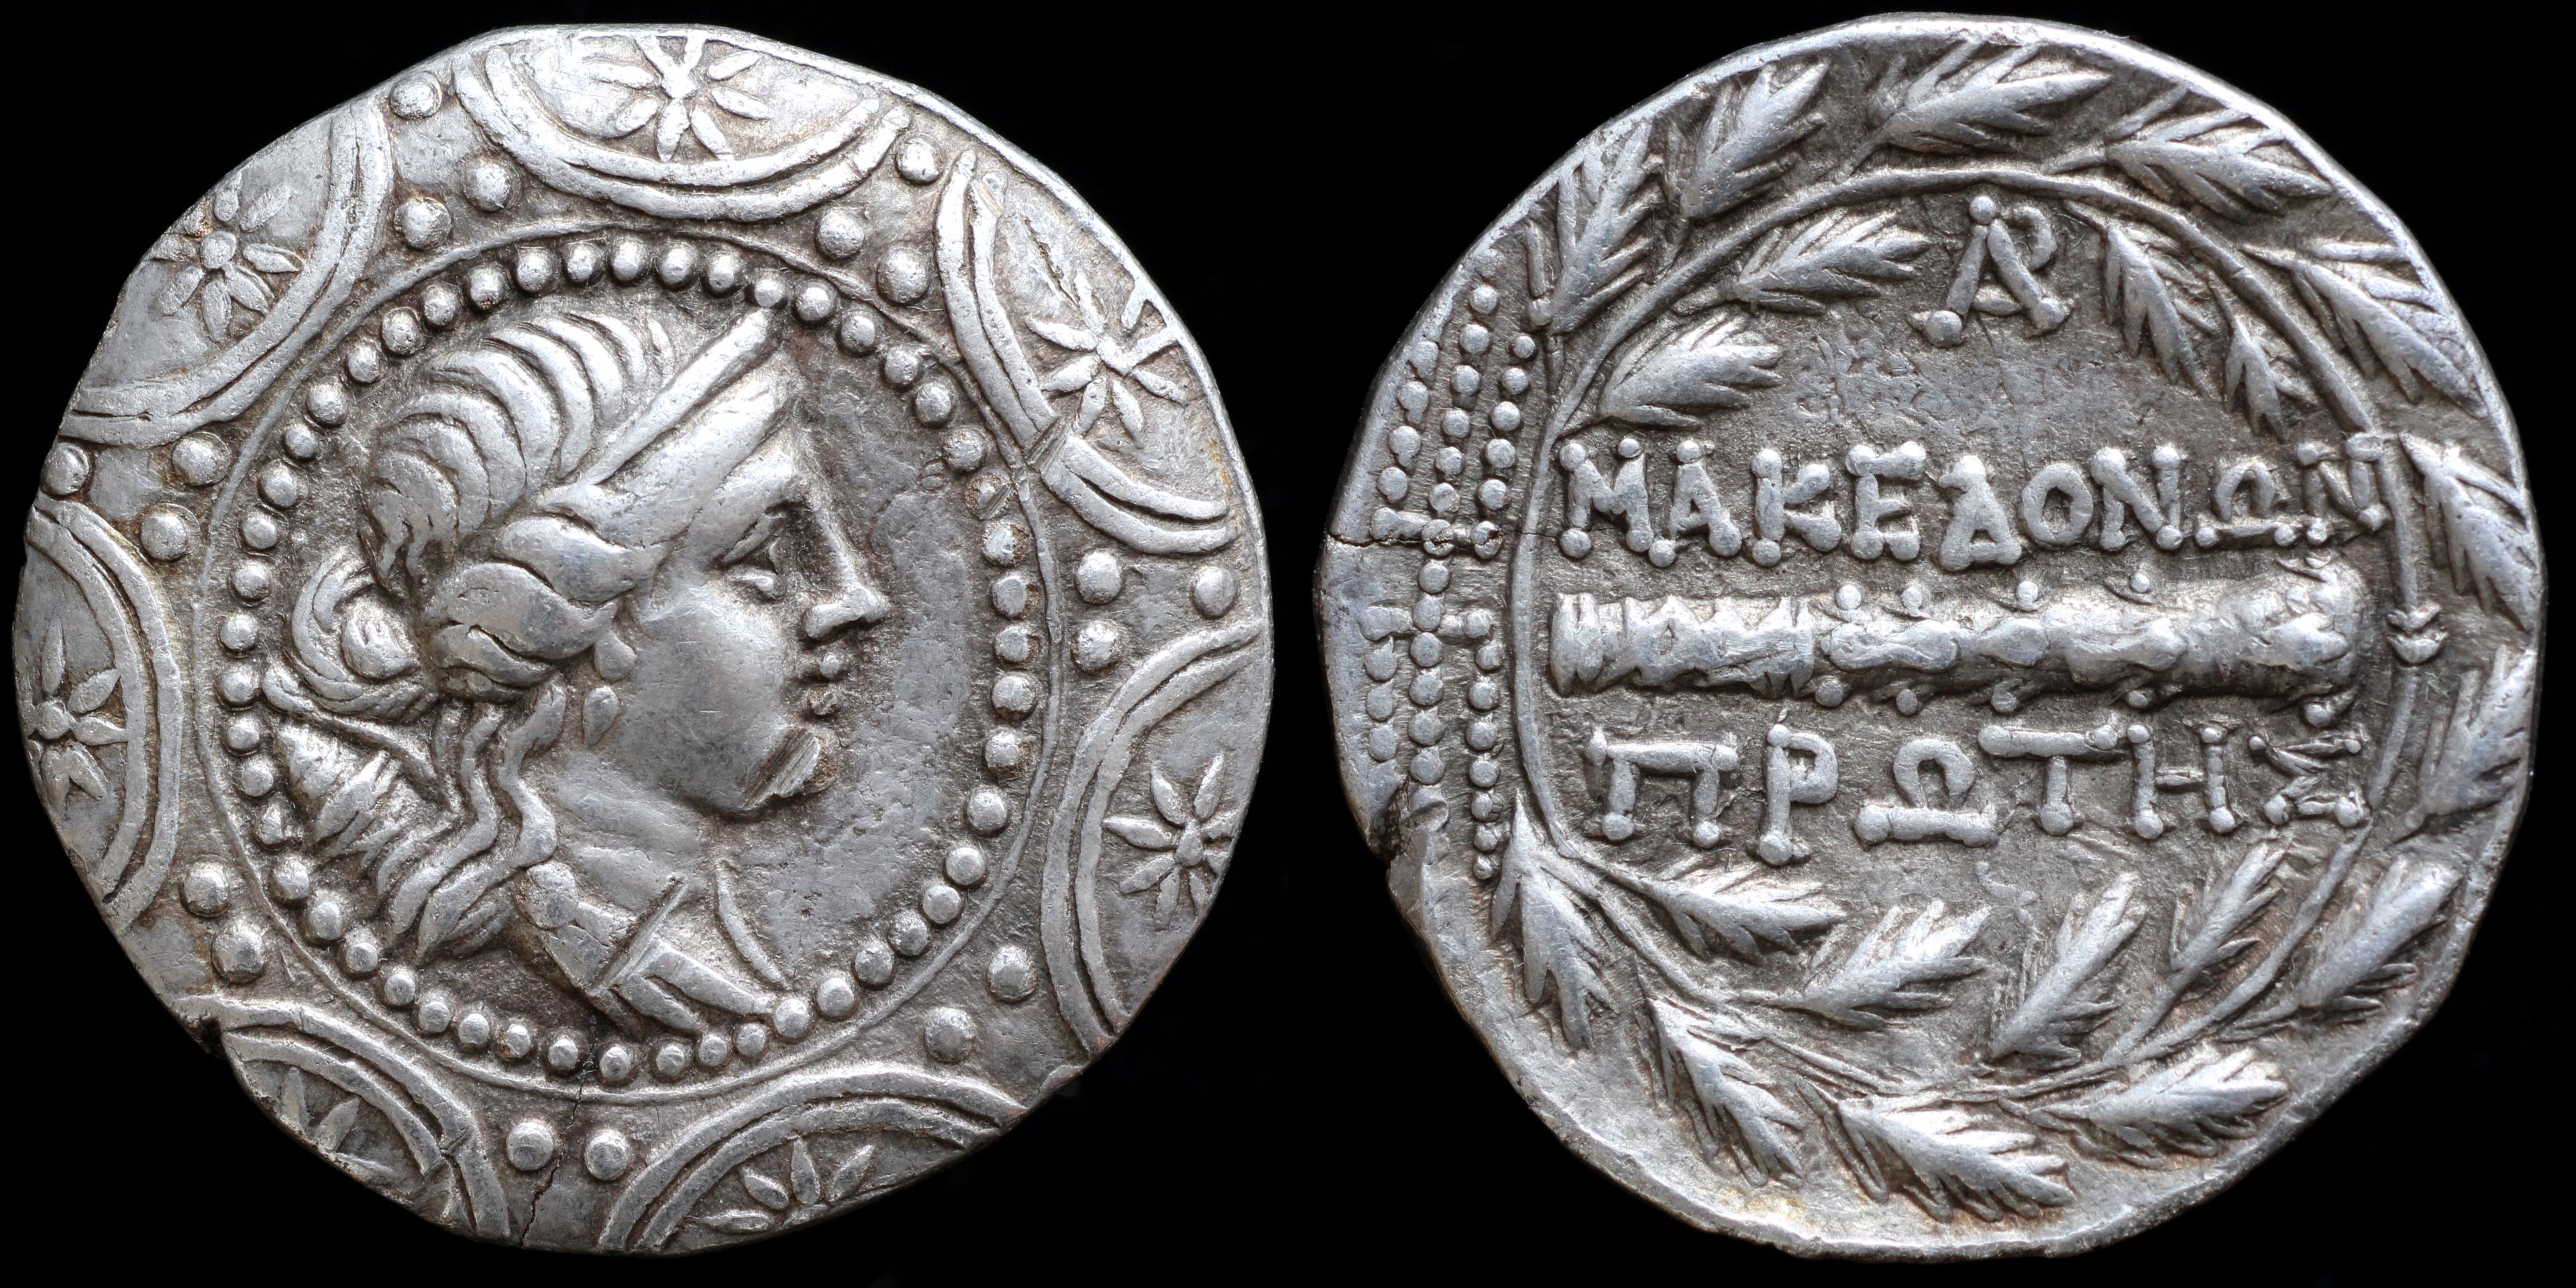 /Files/Images/Coinsite/CoinDB/Macedon_tetradrachm.jpg